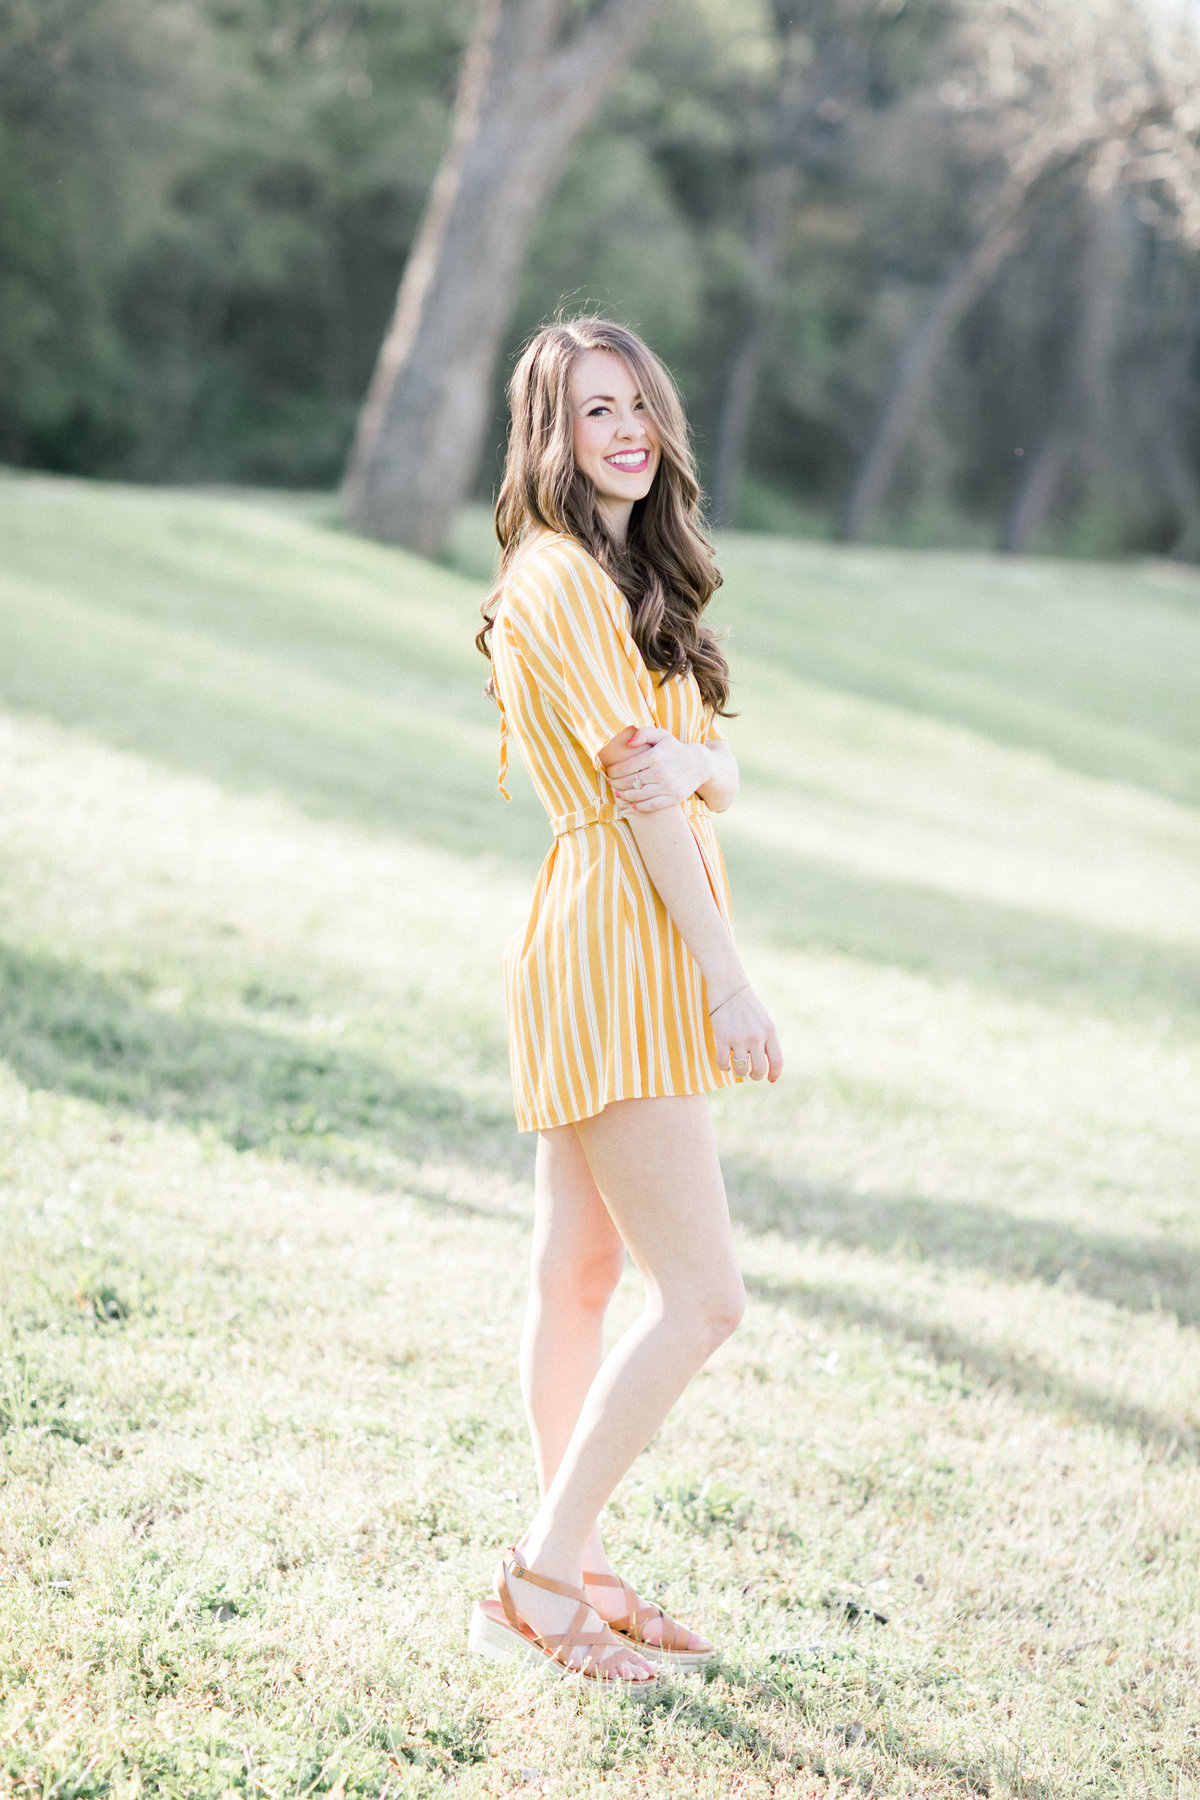 Meredith Steward - Alison Plueckhahn Photography 1